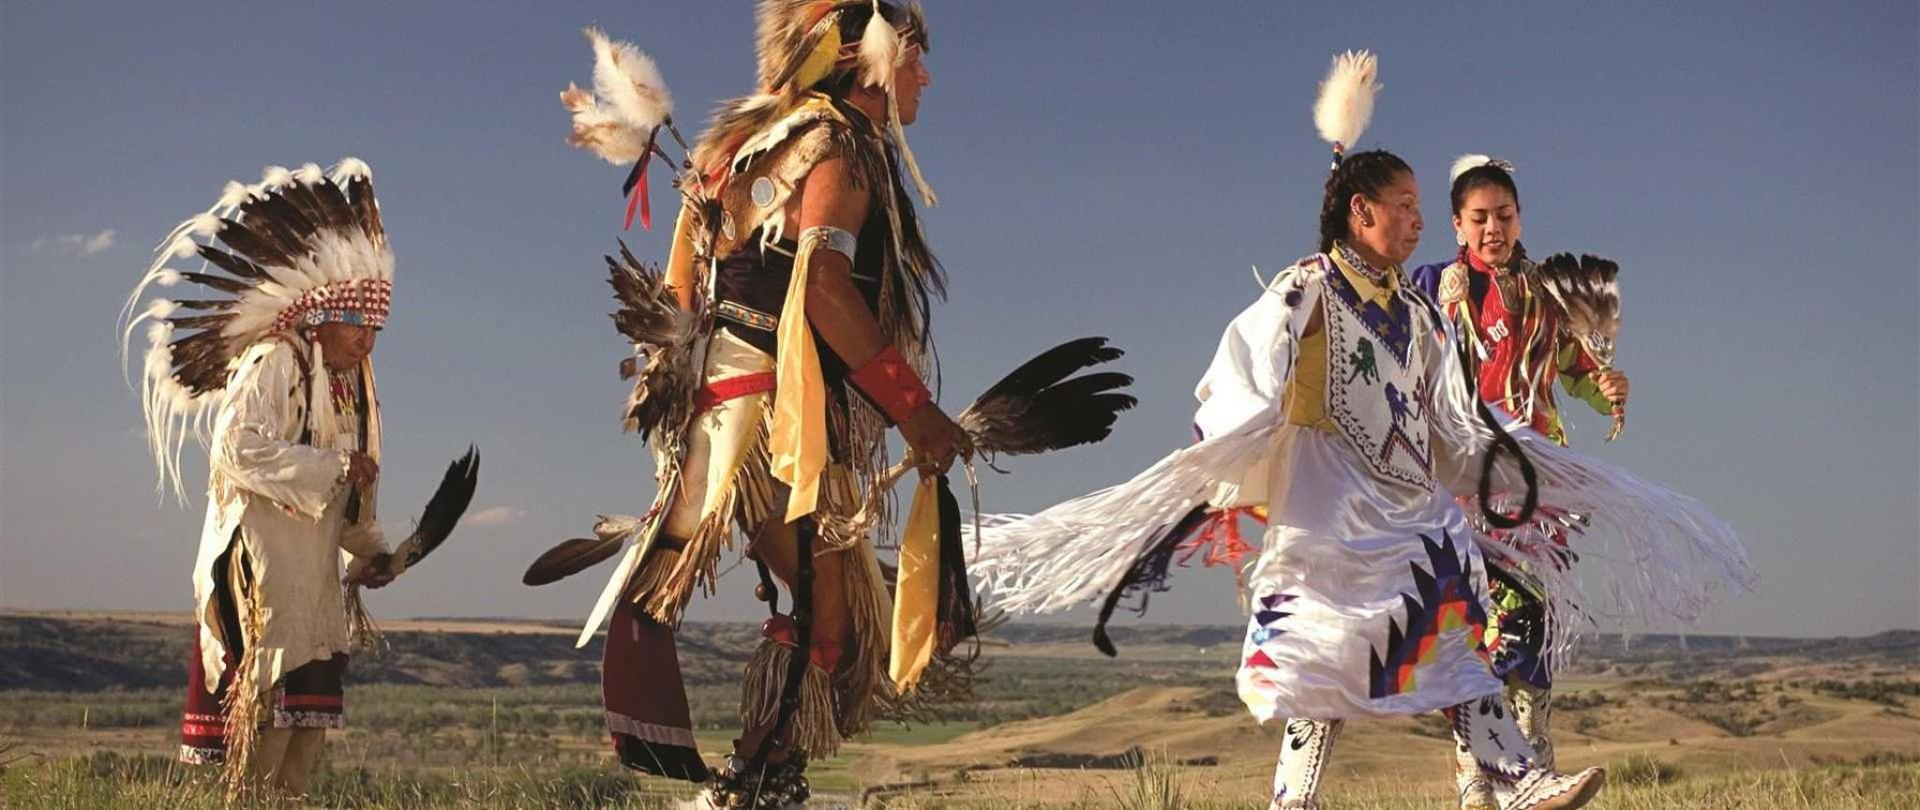 native-culture-2-1.jpg.1920x810_default.jpeg